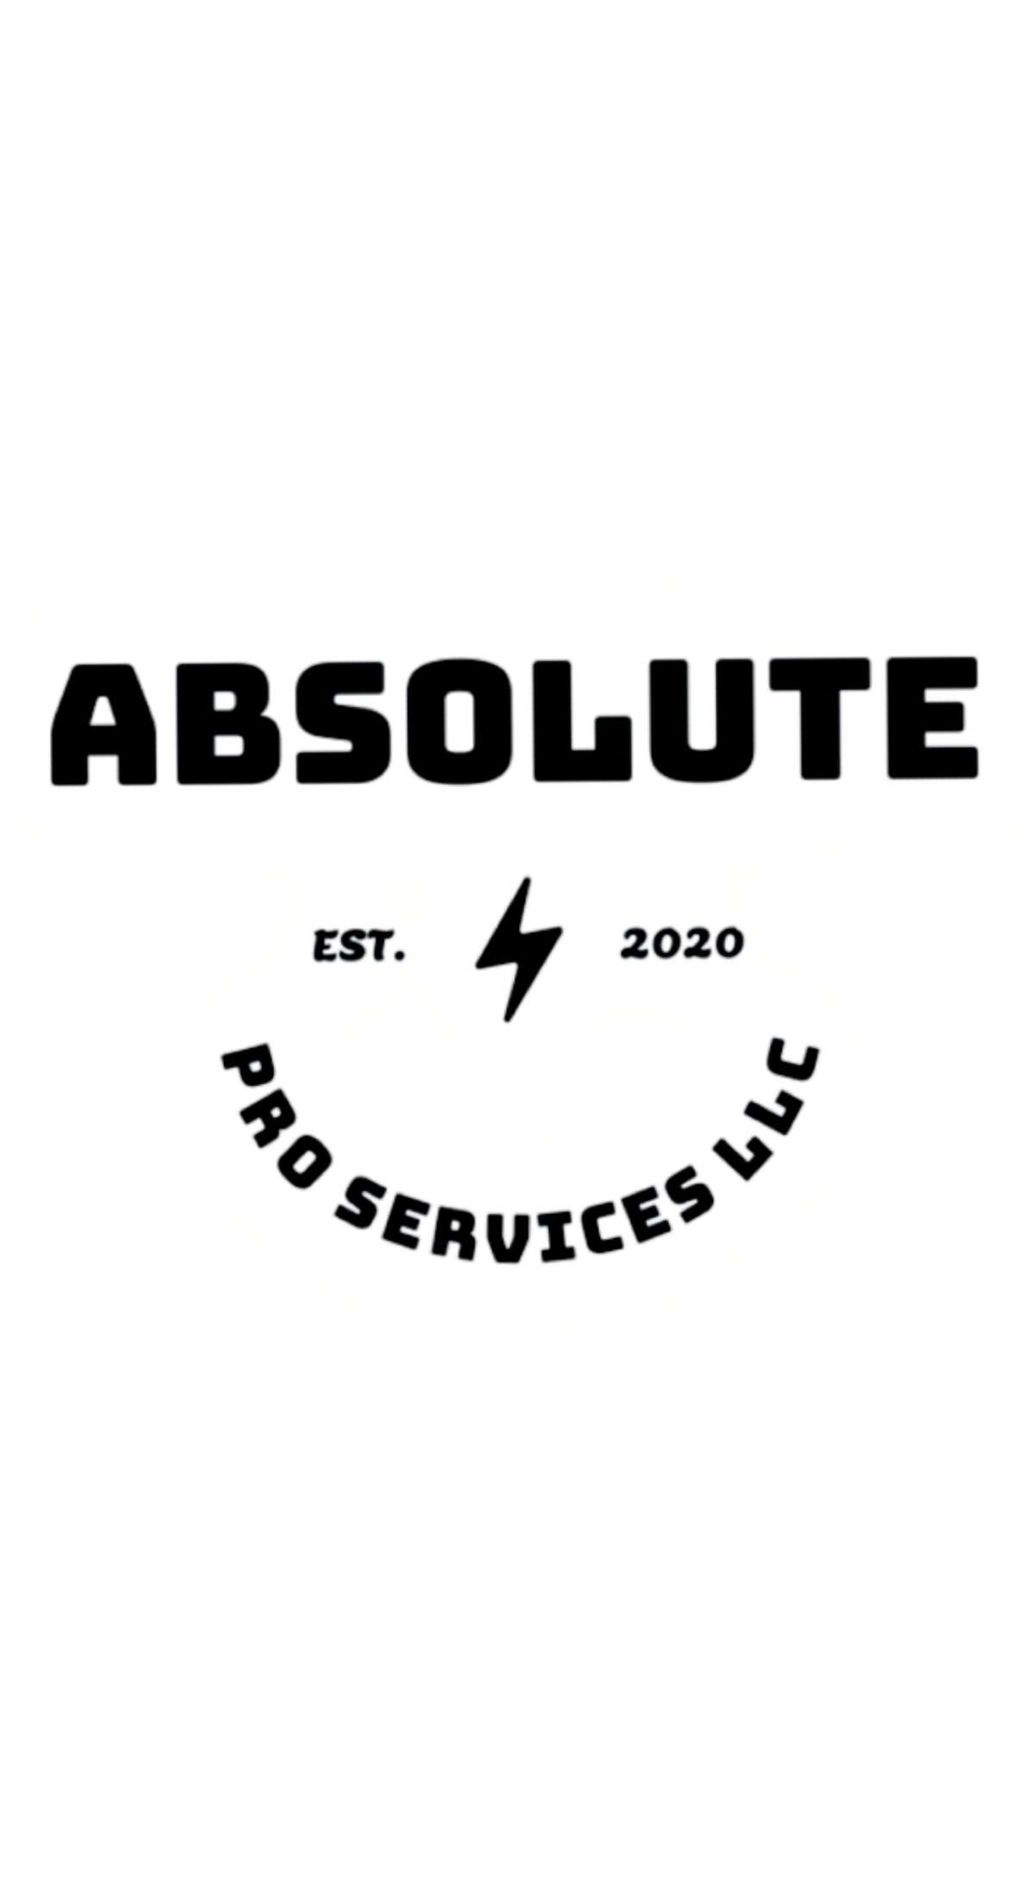 Absolute Pro Services LLC